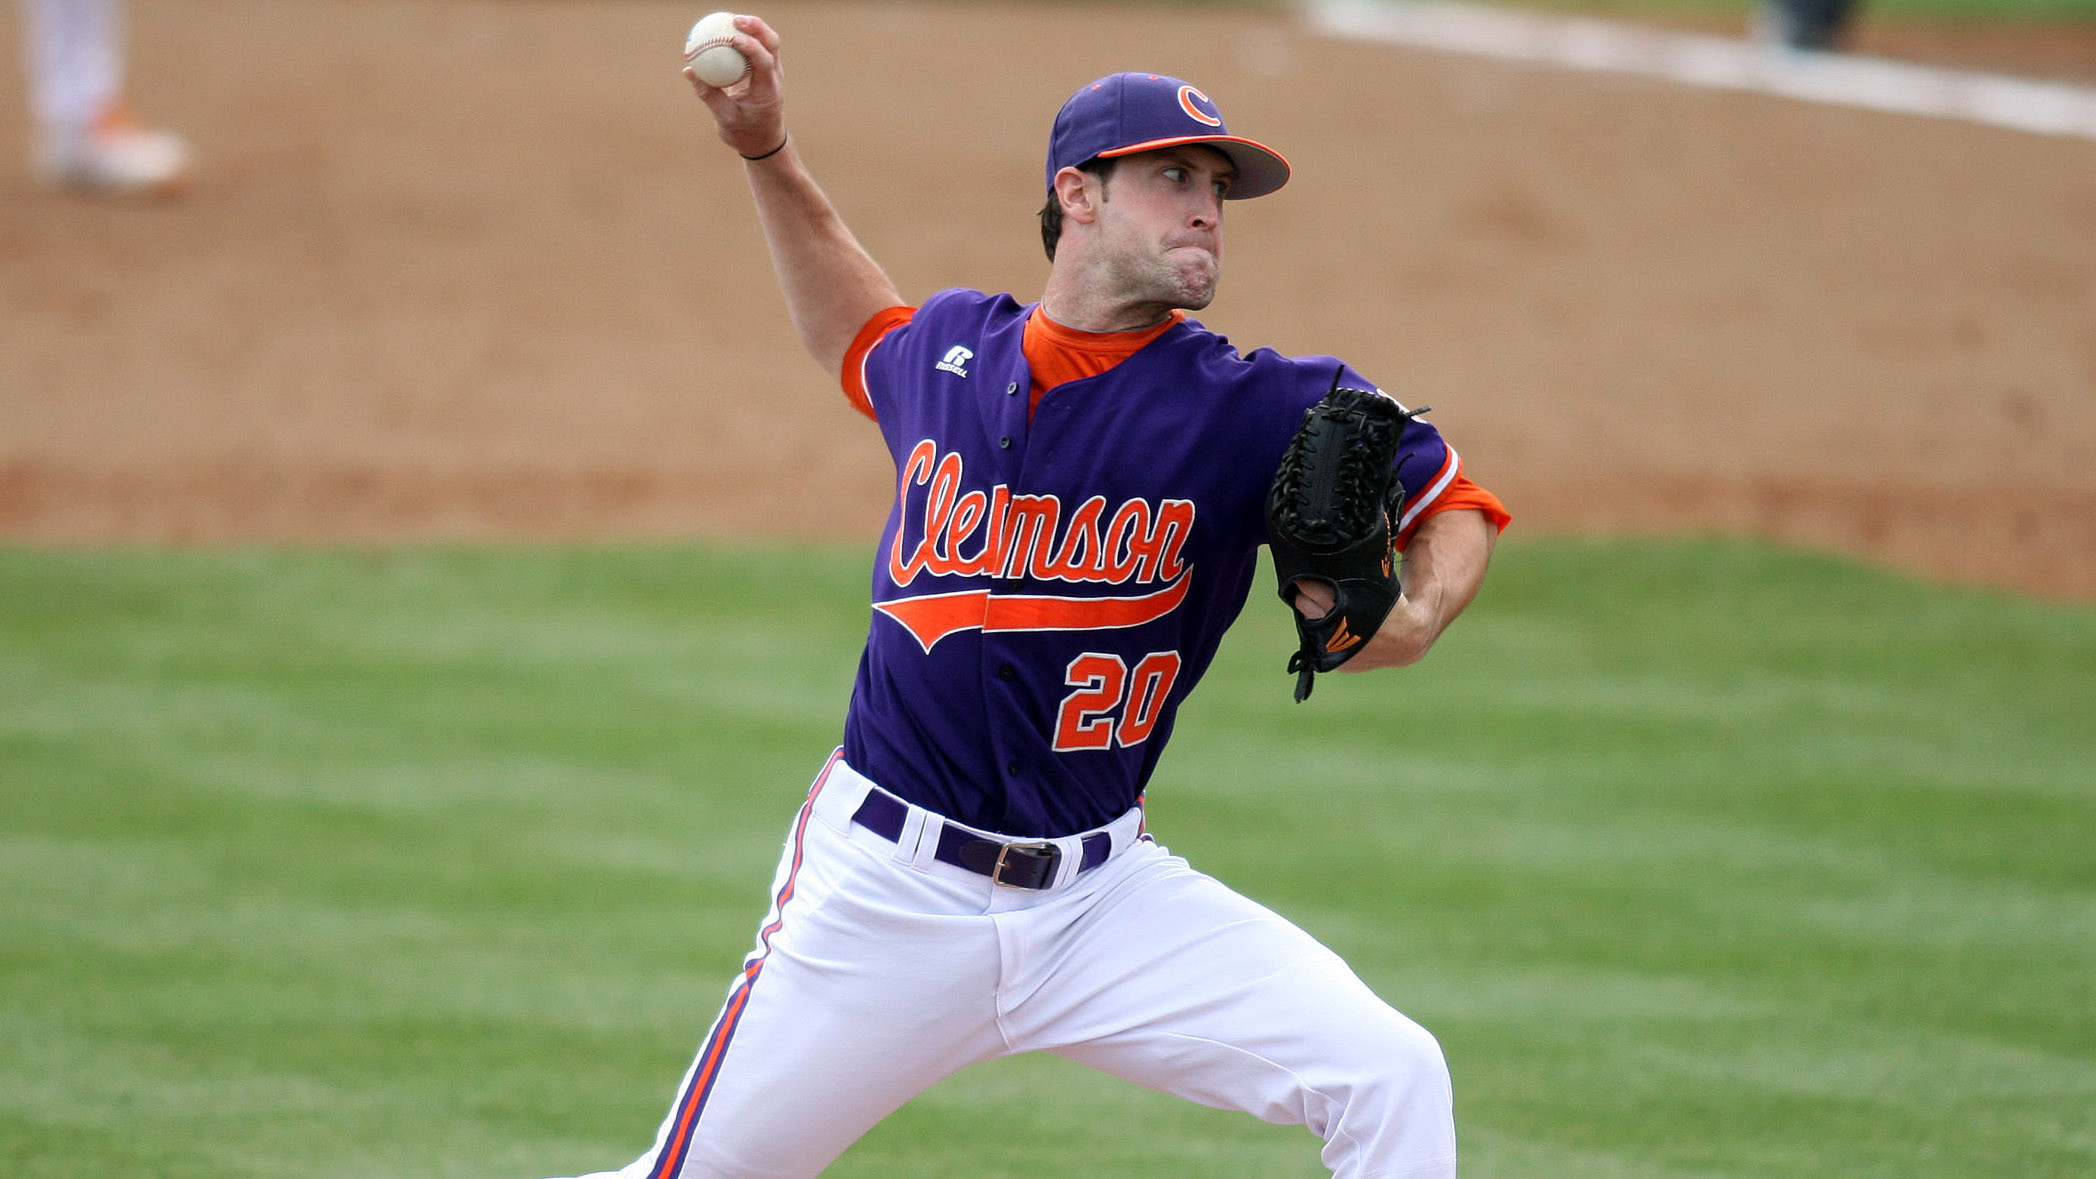 Firth Selected in 19th Round of MLB Draft Saturday